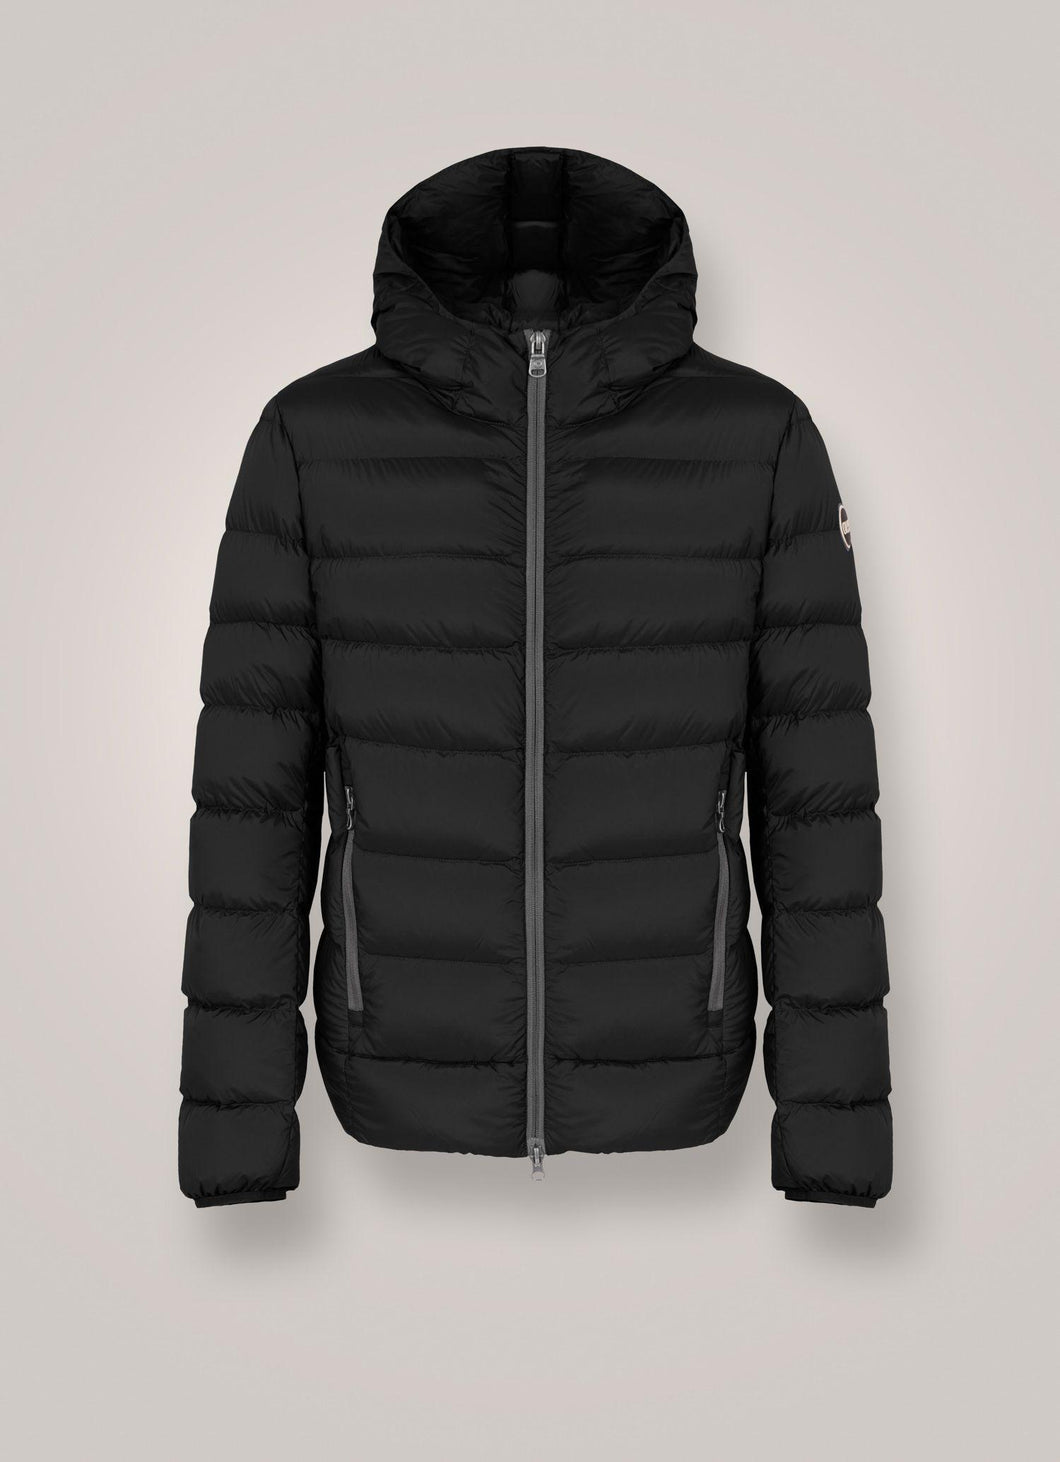 Colmar Strech Down Jacket With Fixed Hood-Jacket-Colmar-XS-Black-Classic fashion CF13